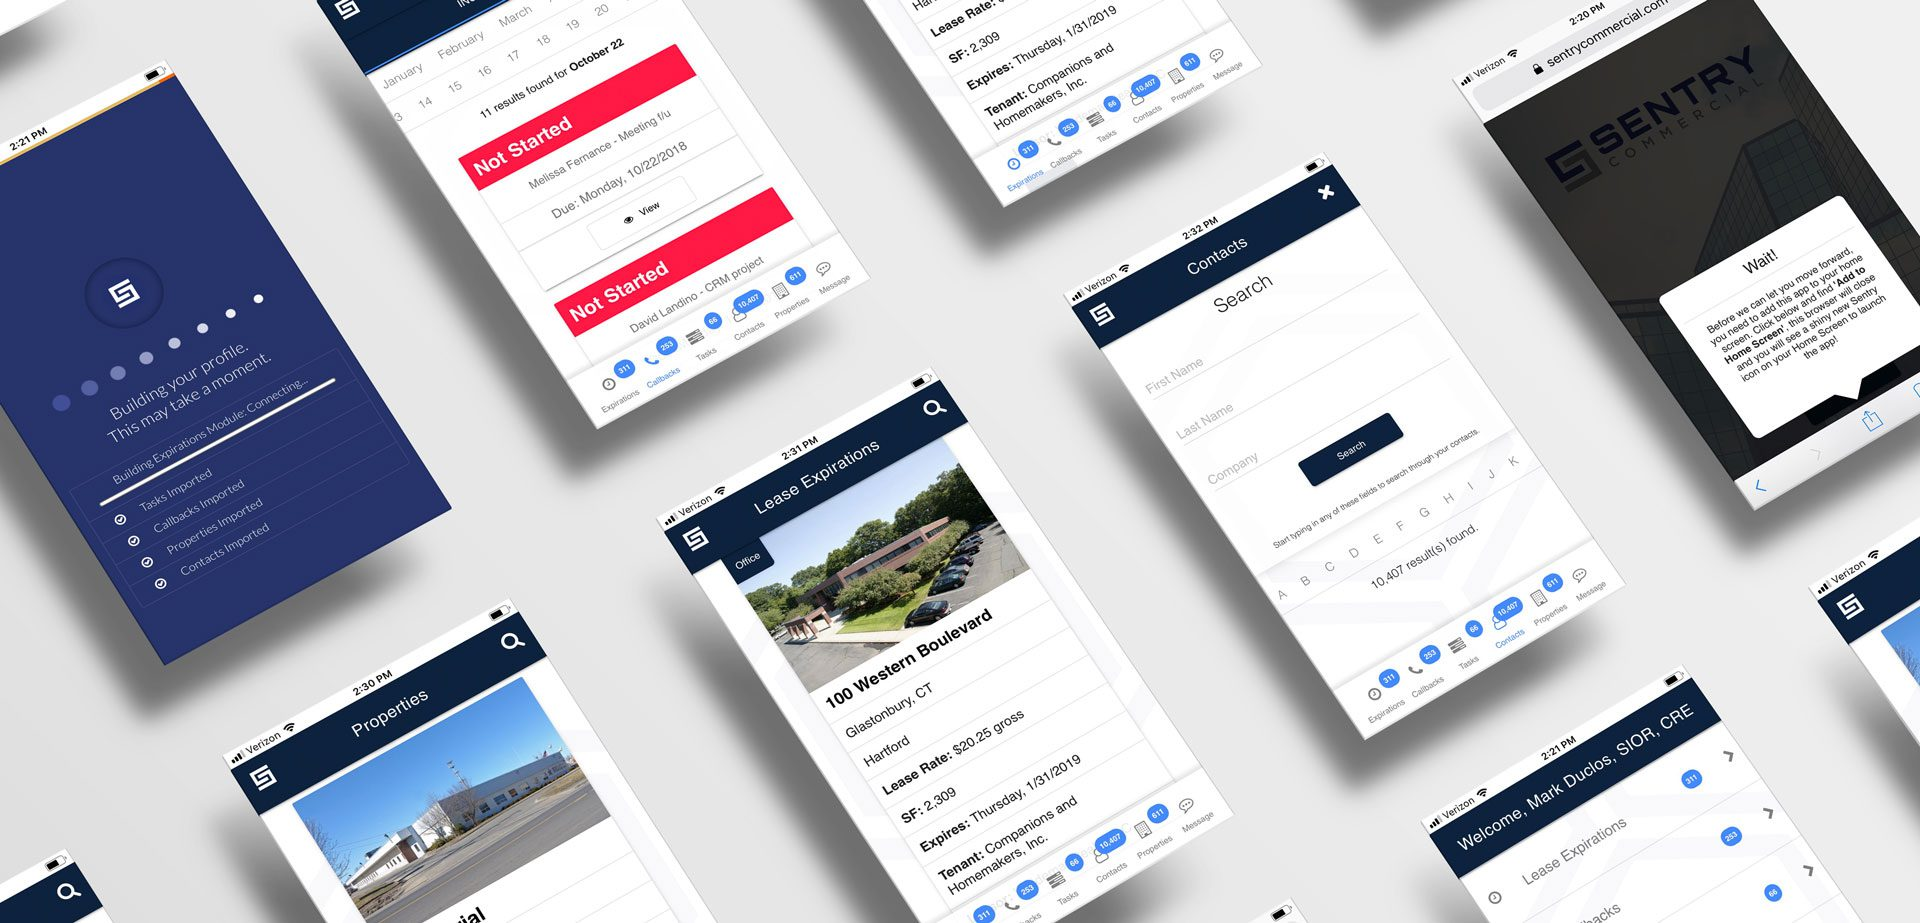 web app screen flow